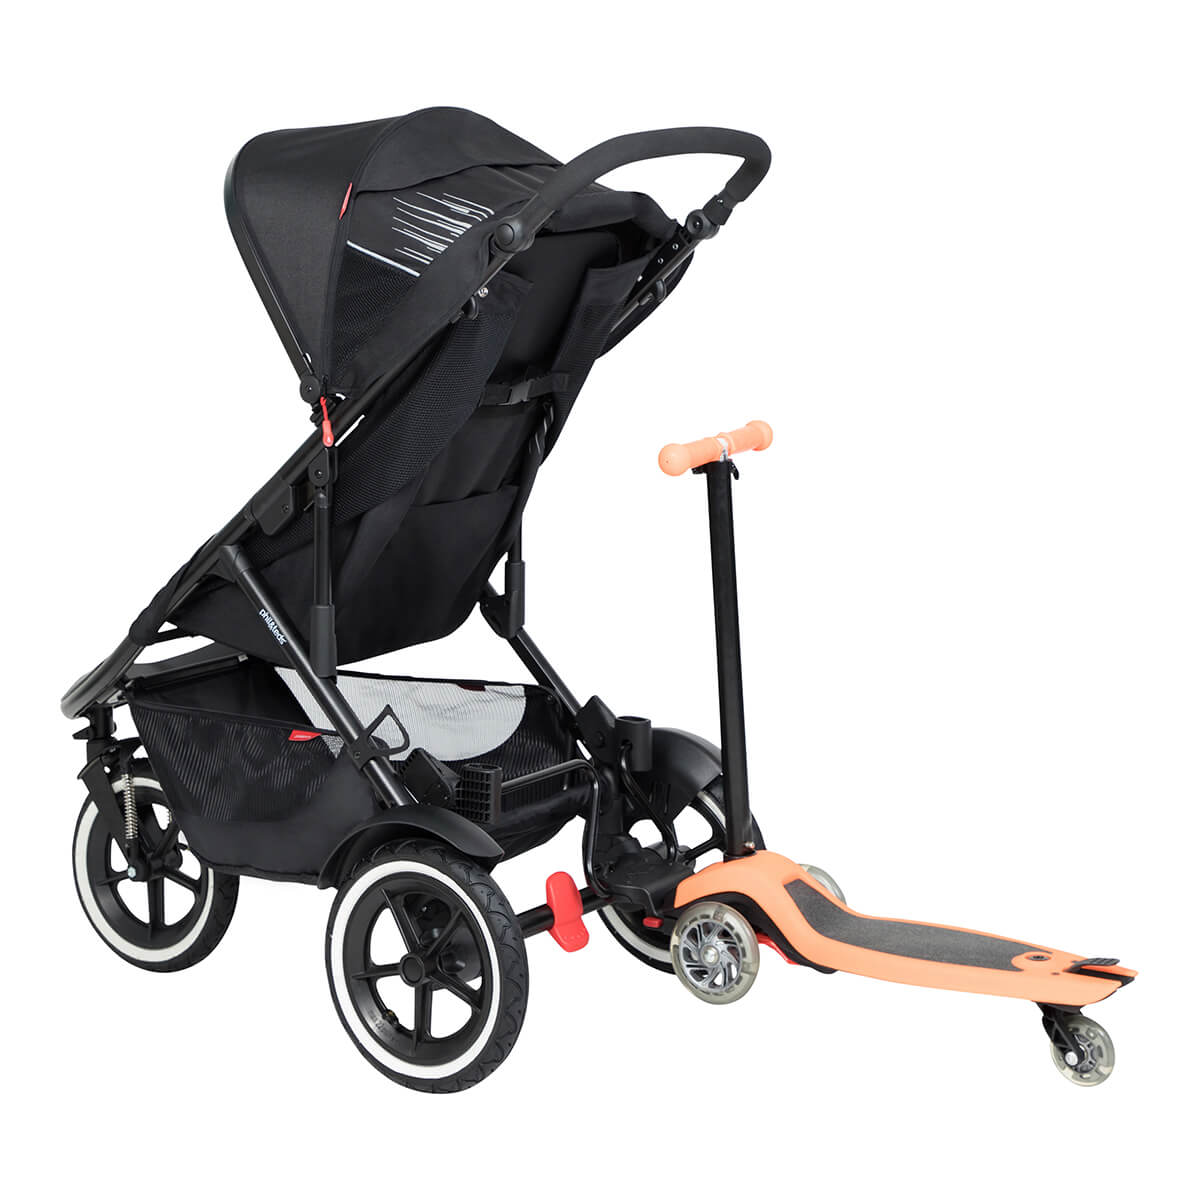 https://cdn.accentuate.io/4509527539800/19272668348504/philteds-sport-buggy-with-freerider-stroller-board-in-rear-v1626484359701.jpg?1200x1200